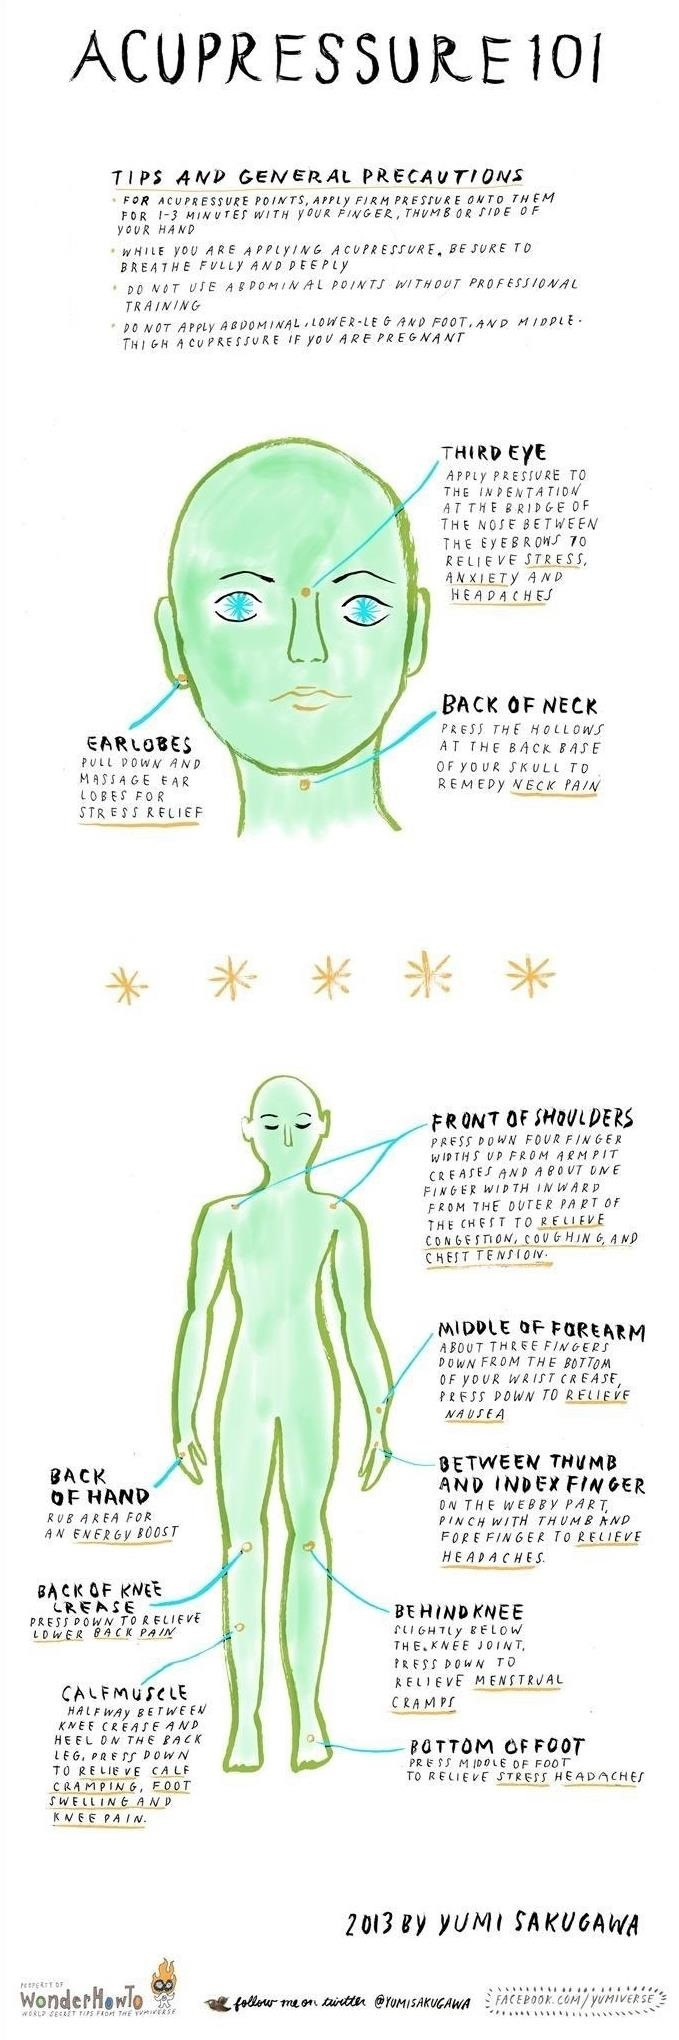 Acupressure 101: Relieve Mental & Physical Stress Using These Acupoints